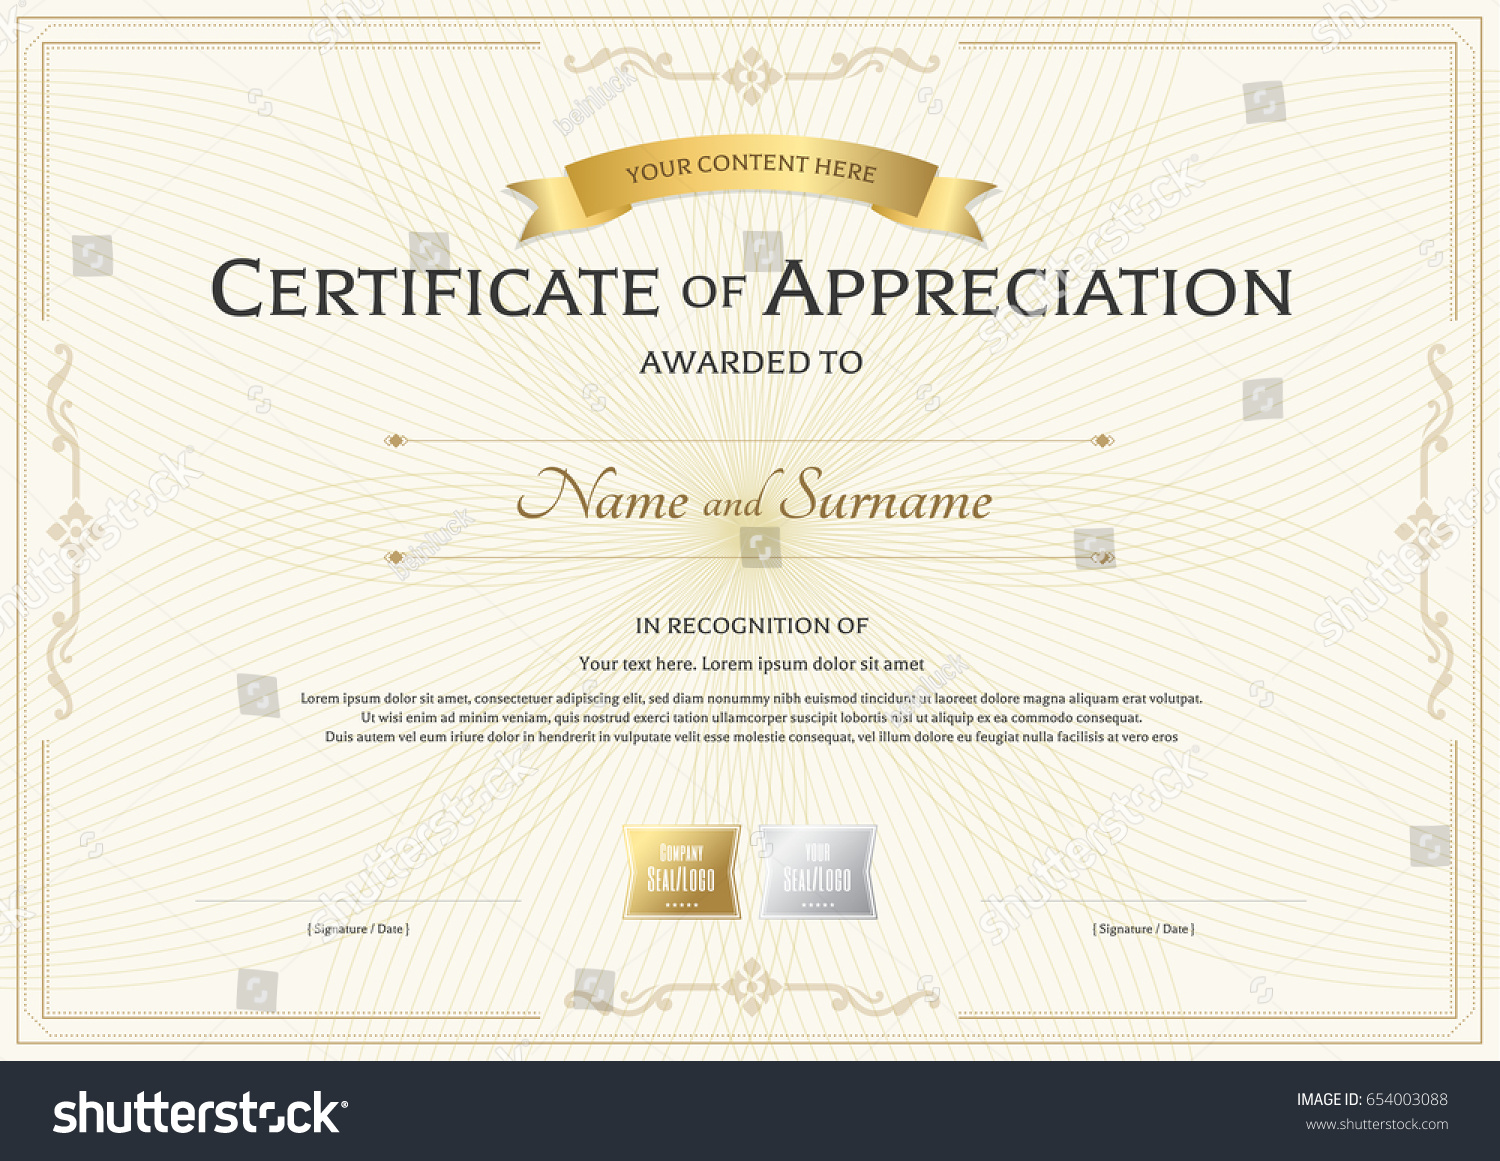 Certificate appreciation template gold award ribbon stock vector certificate of appreciation template with gold award ribbon on abstract guilloche background with vintage border style yadclub Images